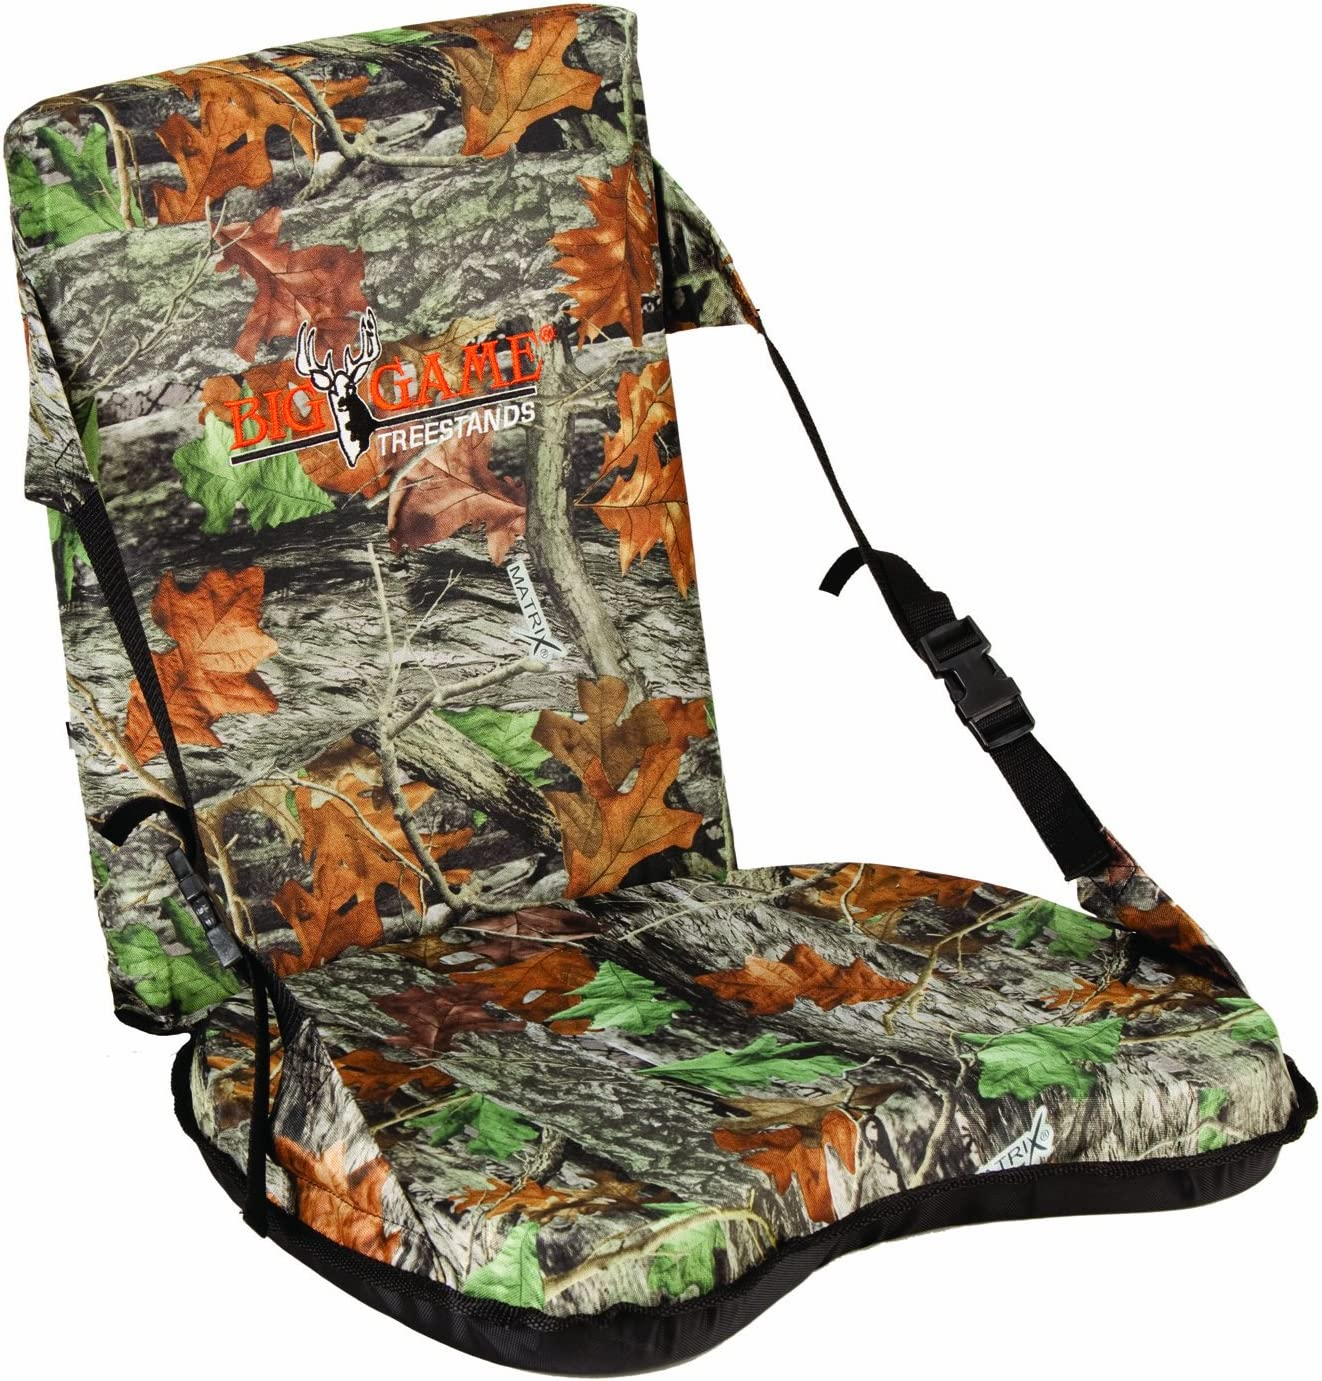 Big Game Treestands The Complete Seat